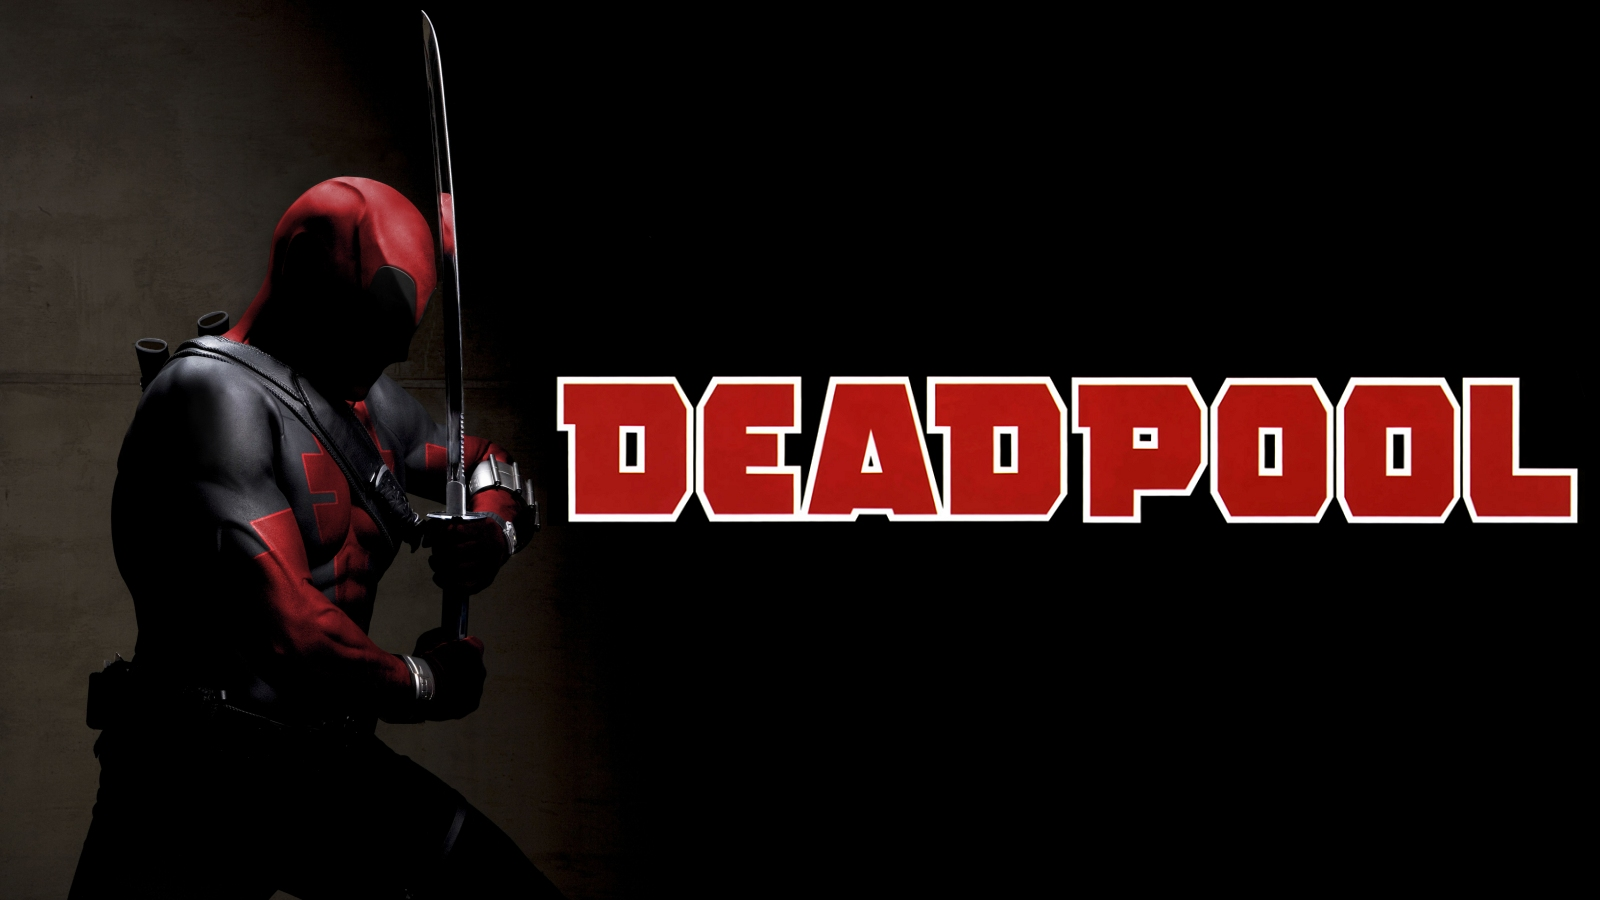 Comics - Deadpool Fondo de Pantalla